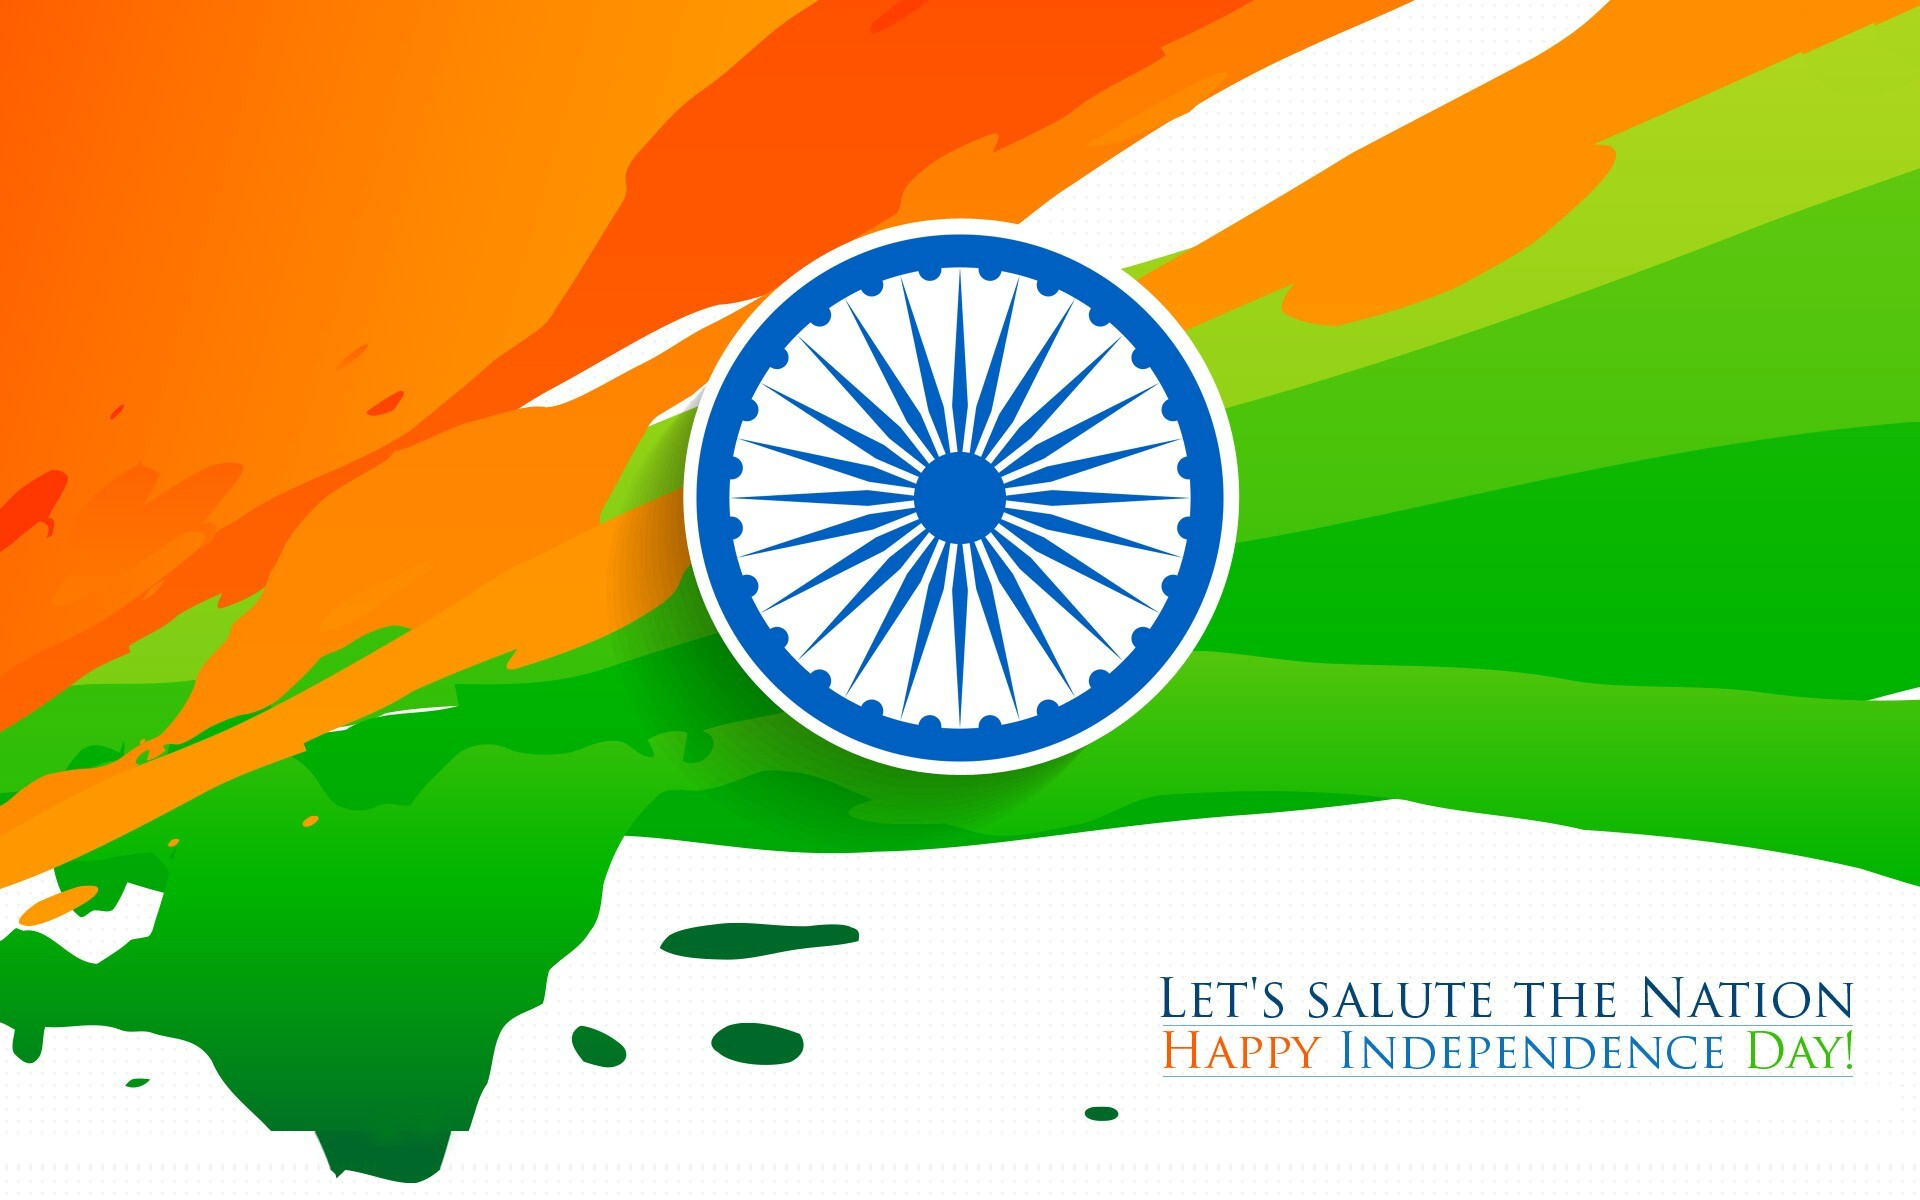 Happy Independence Day Indian Flag Tricolor Hd Wallpaper Hd Wallpapers